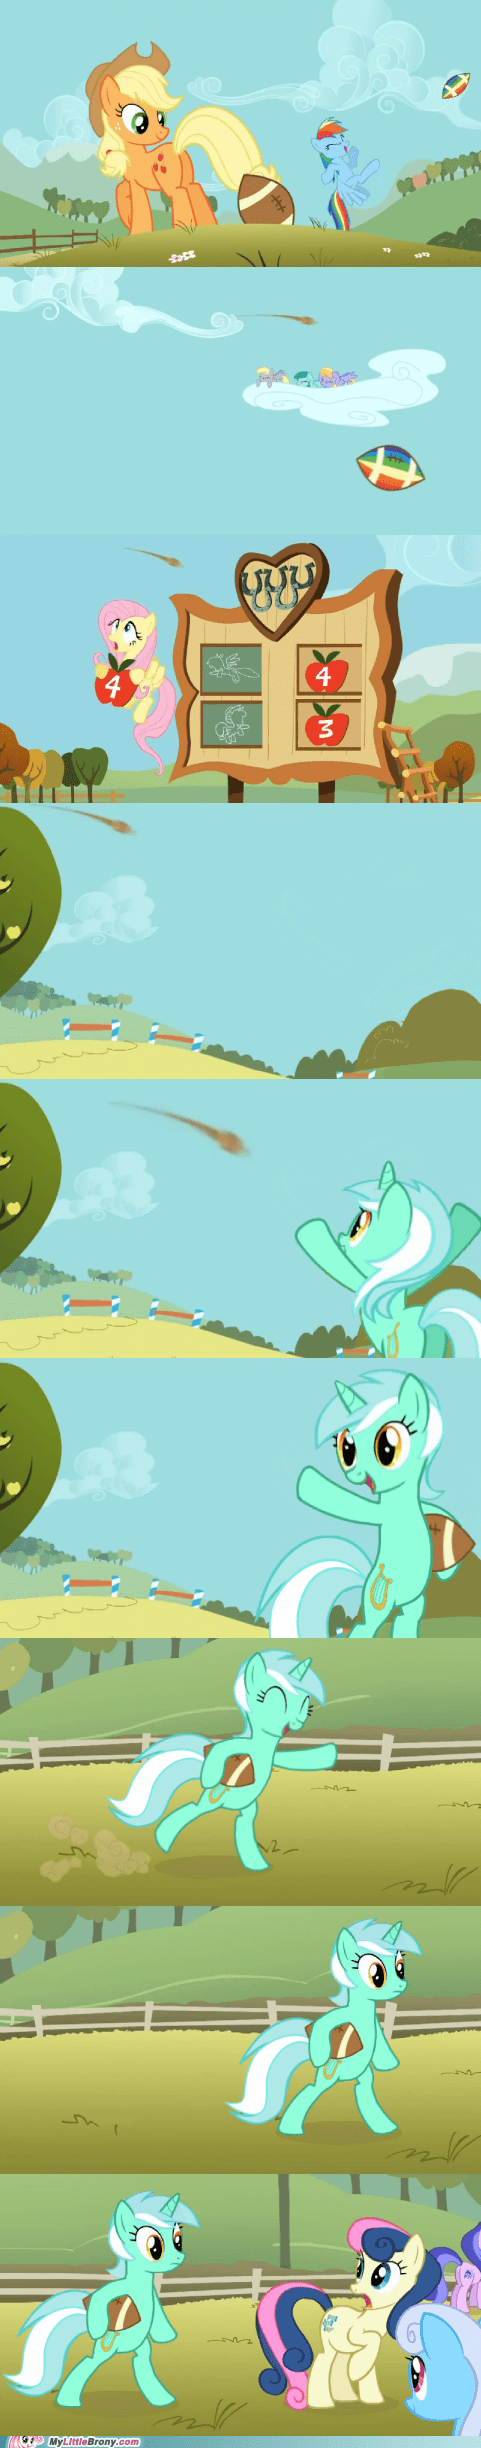 lyra Awkward comic football having fun - 6772378880